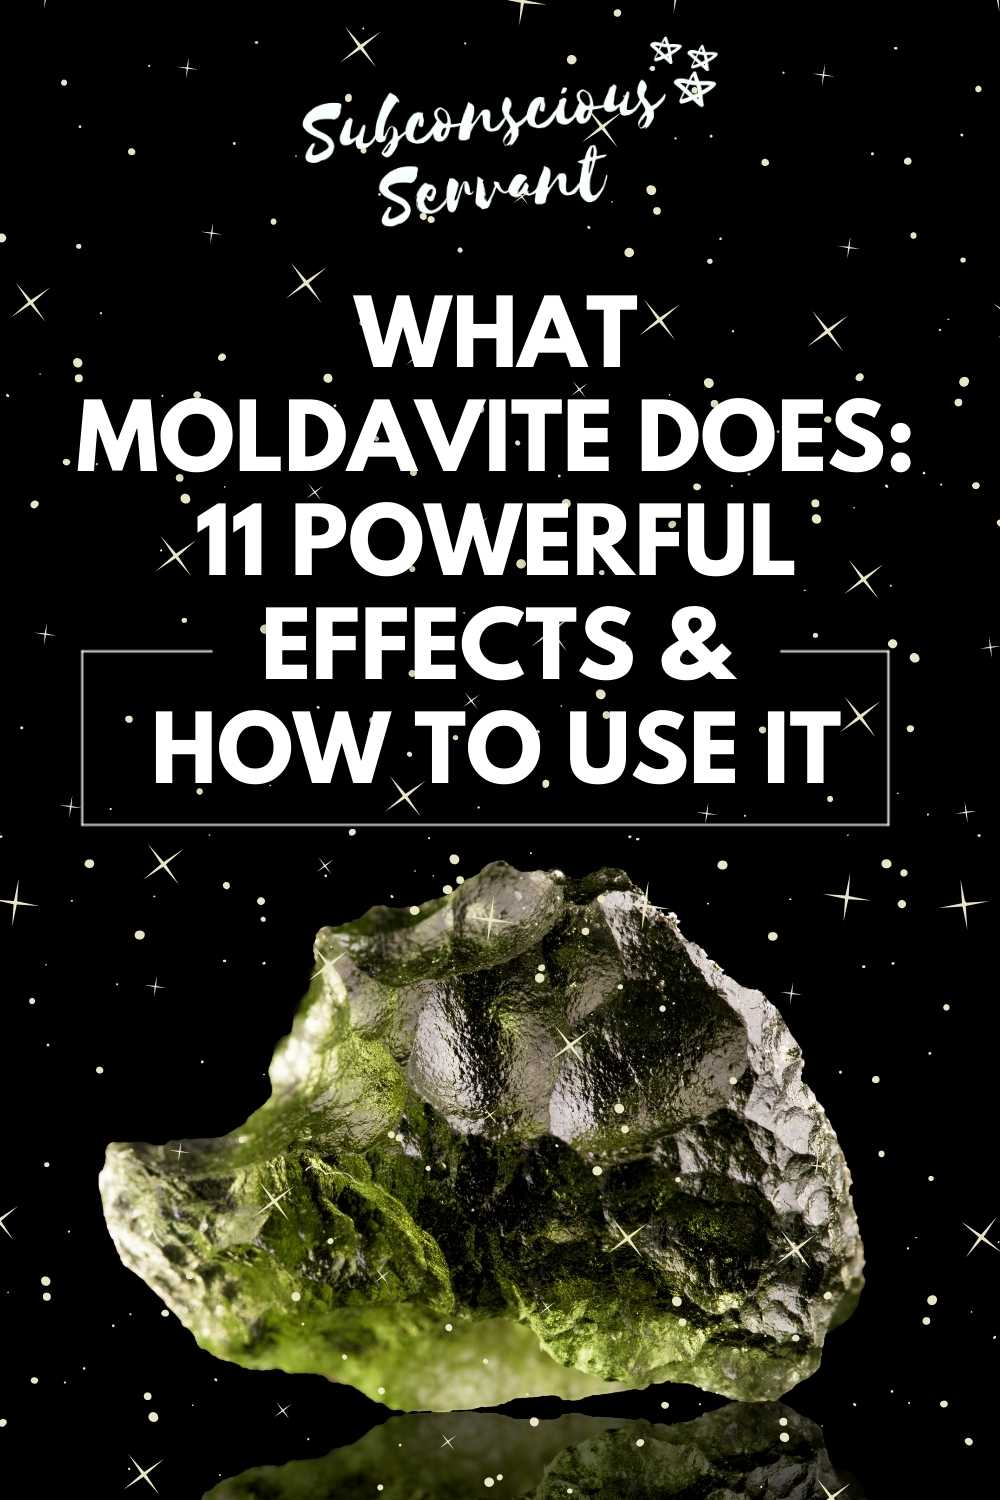 What Moldavite Does: 11 Powerful Effects & How To Use It